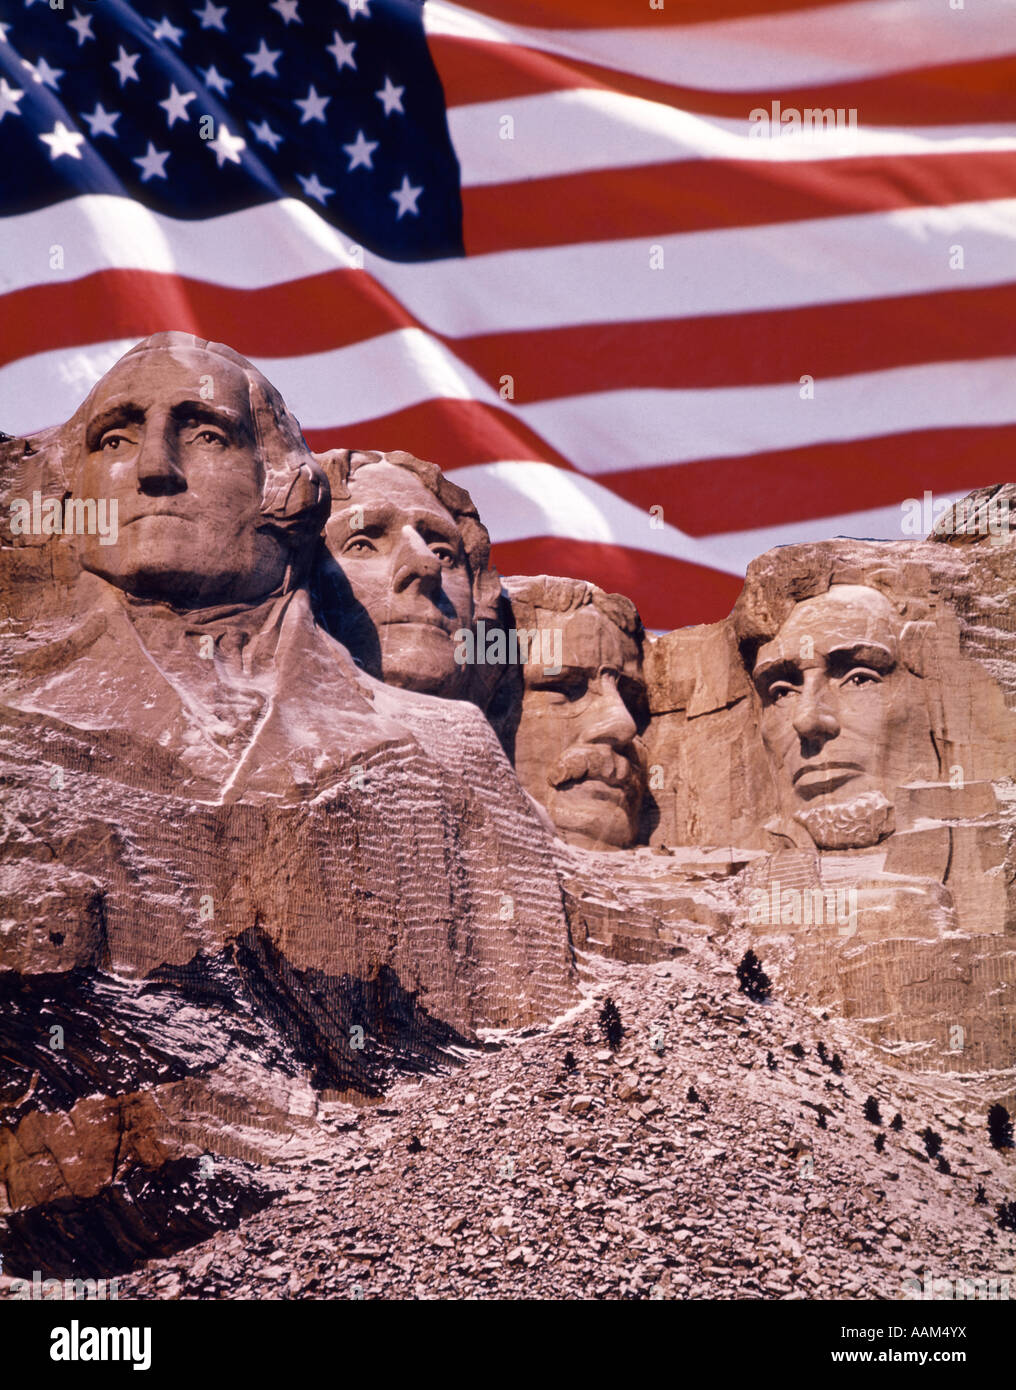 MOUNT RUSHMORE WITH AMERICAN FLAG IN BACKGROUND - Stock Image